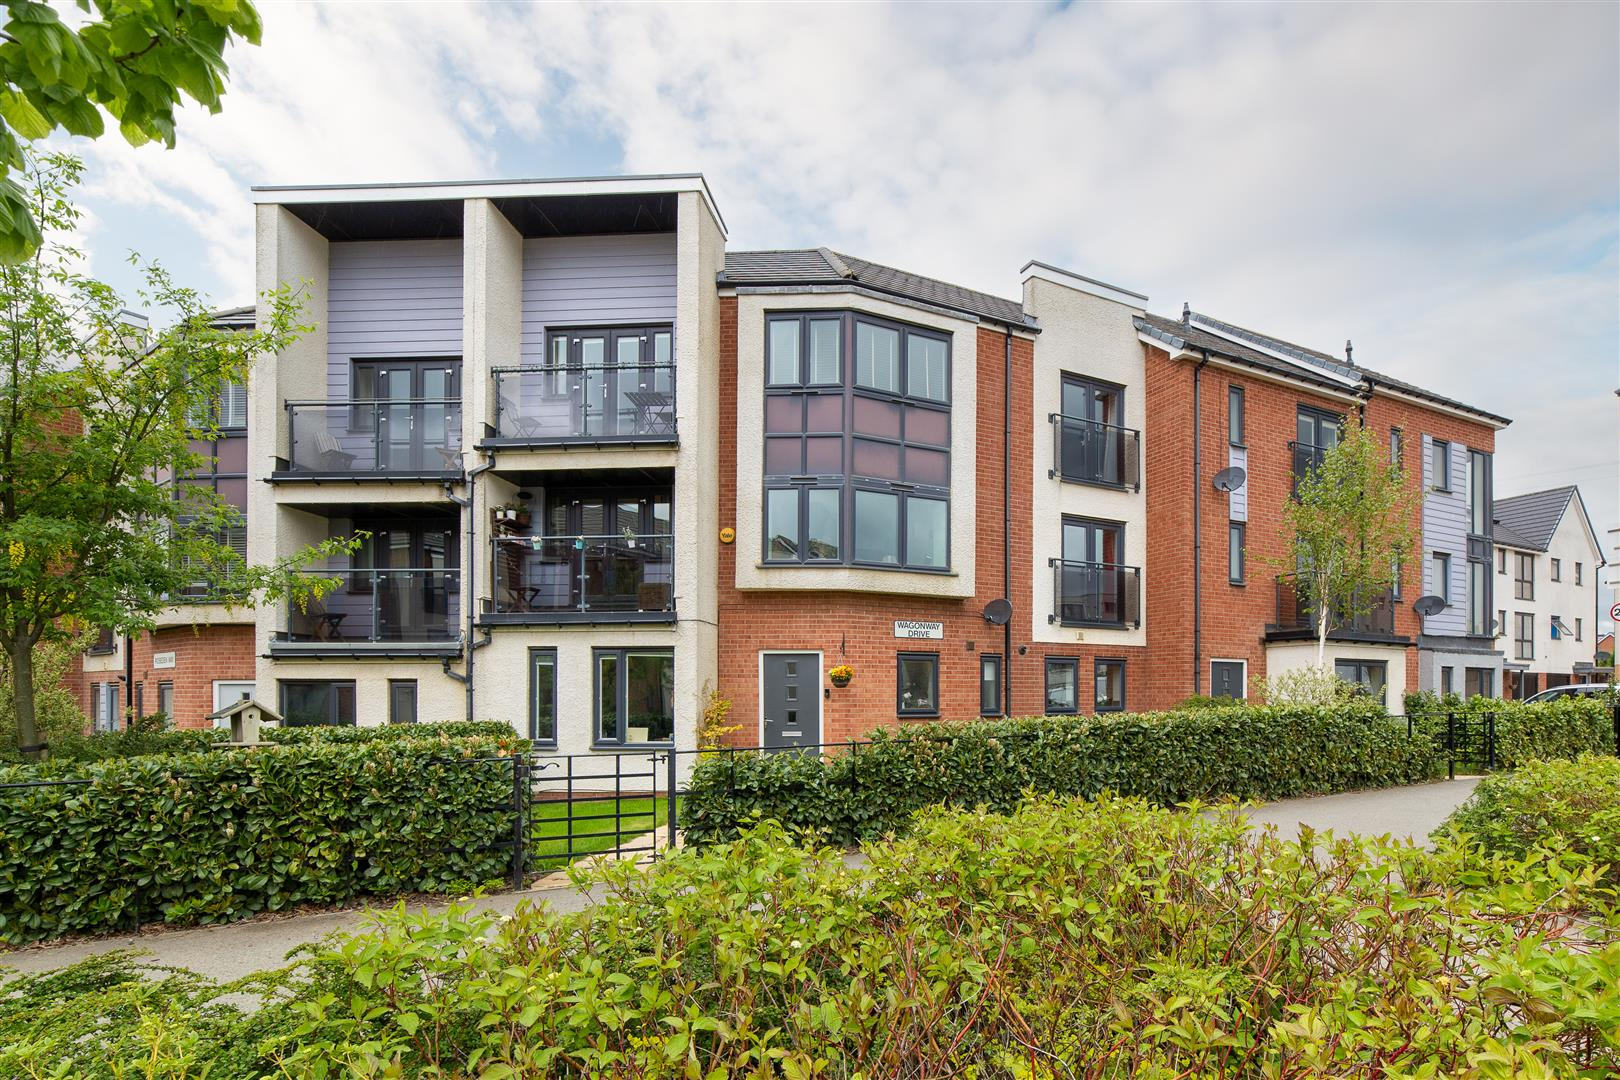 4 bed town house for sale in Wagonway Drive, Great Park, NE13